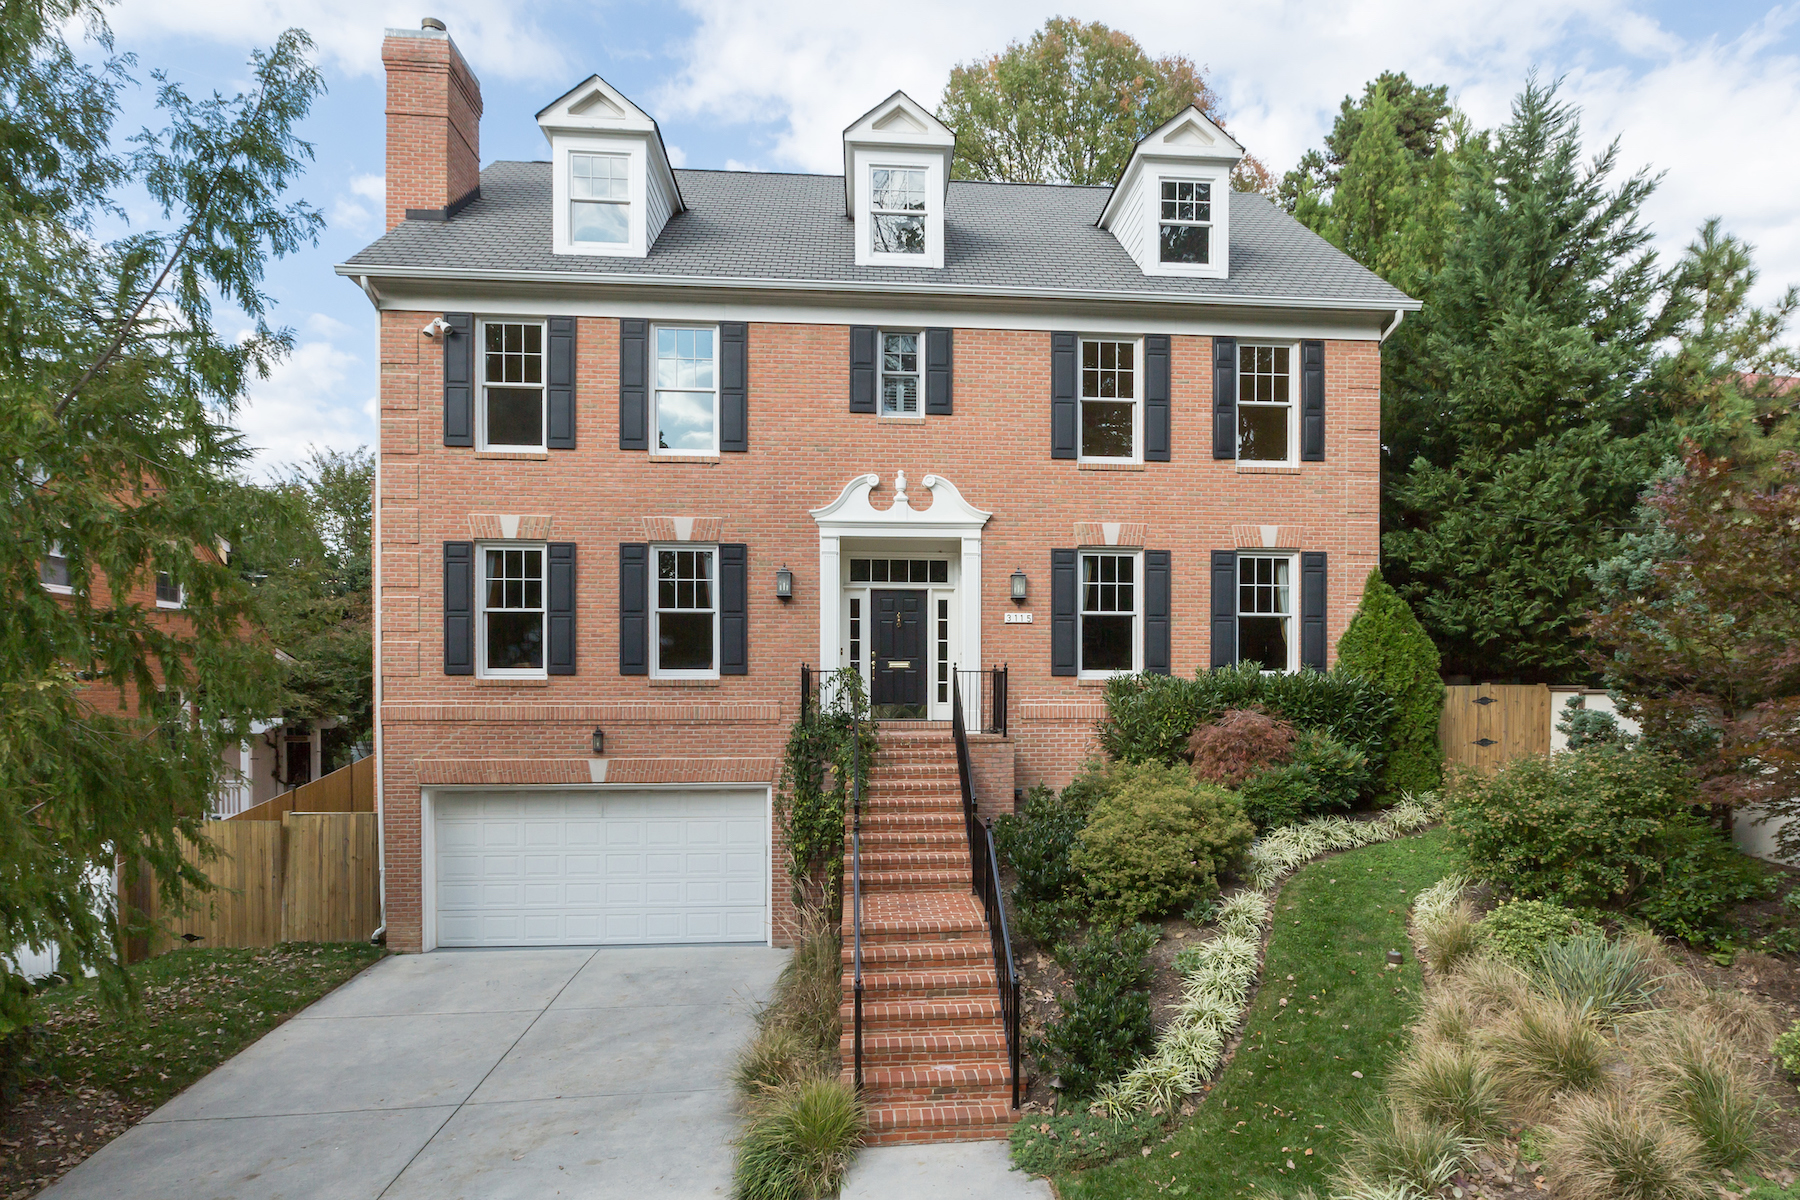 Single Family Home for Sale at Forest Hills 3115 Appleton Street Nw Washington, District Of Columbia, 20008 United States